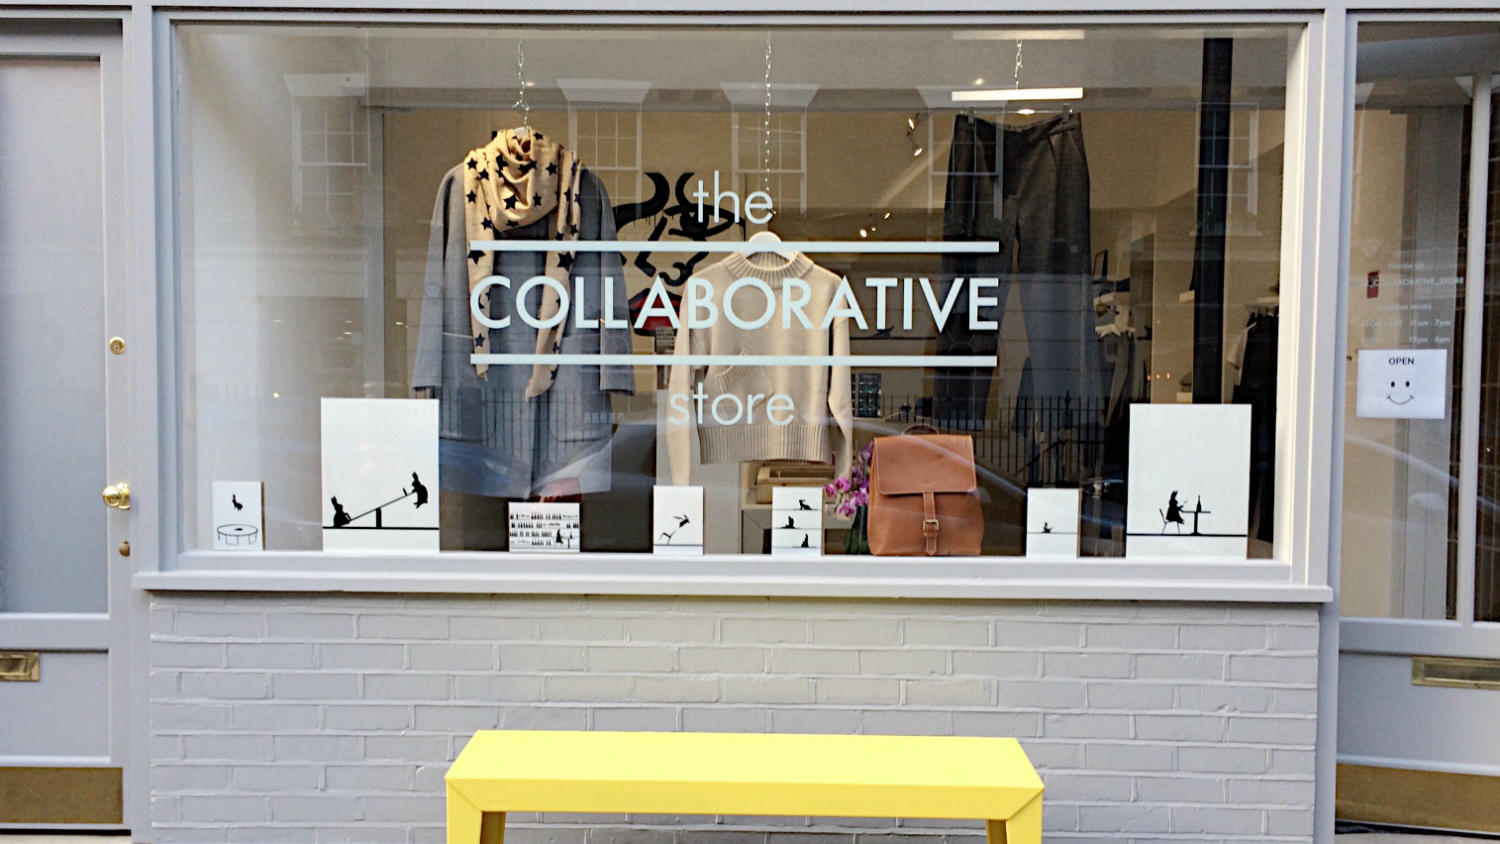 The Collaborative Store